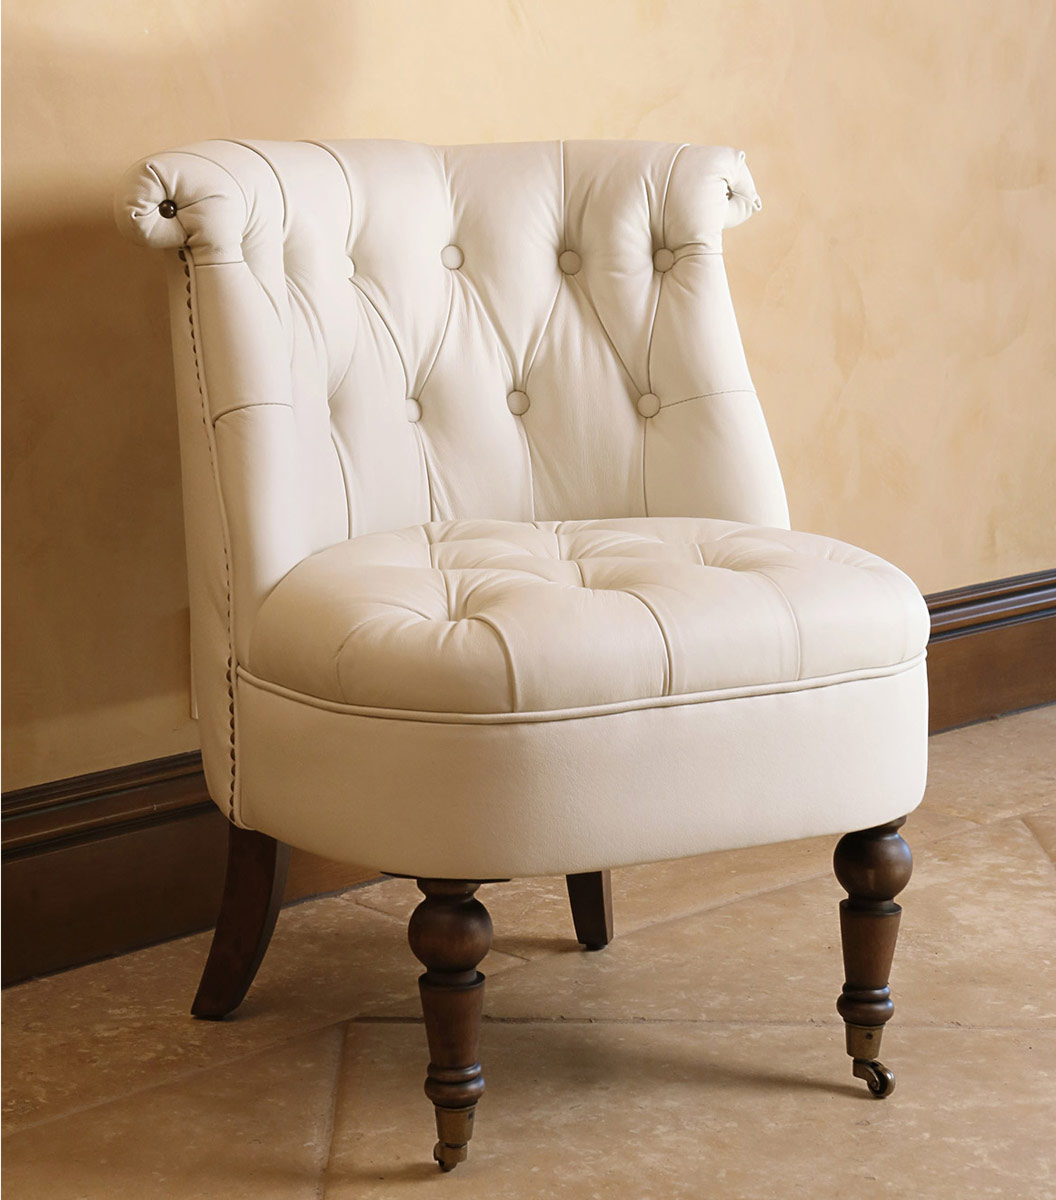 Abbyson Living Monica Pedersen Leather Barrel Chair - Ivory